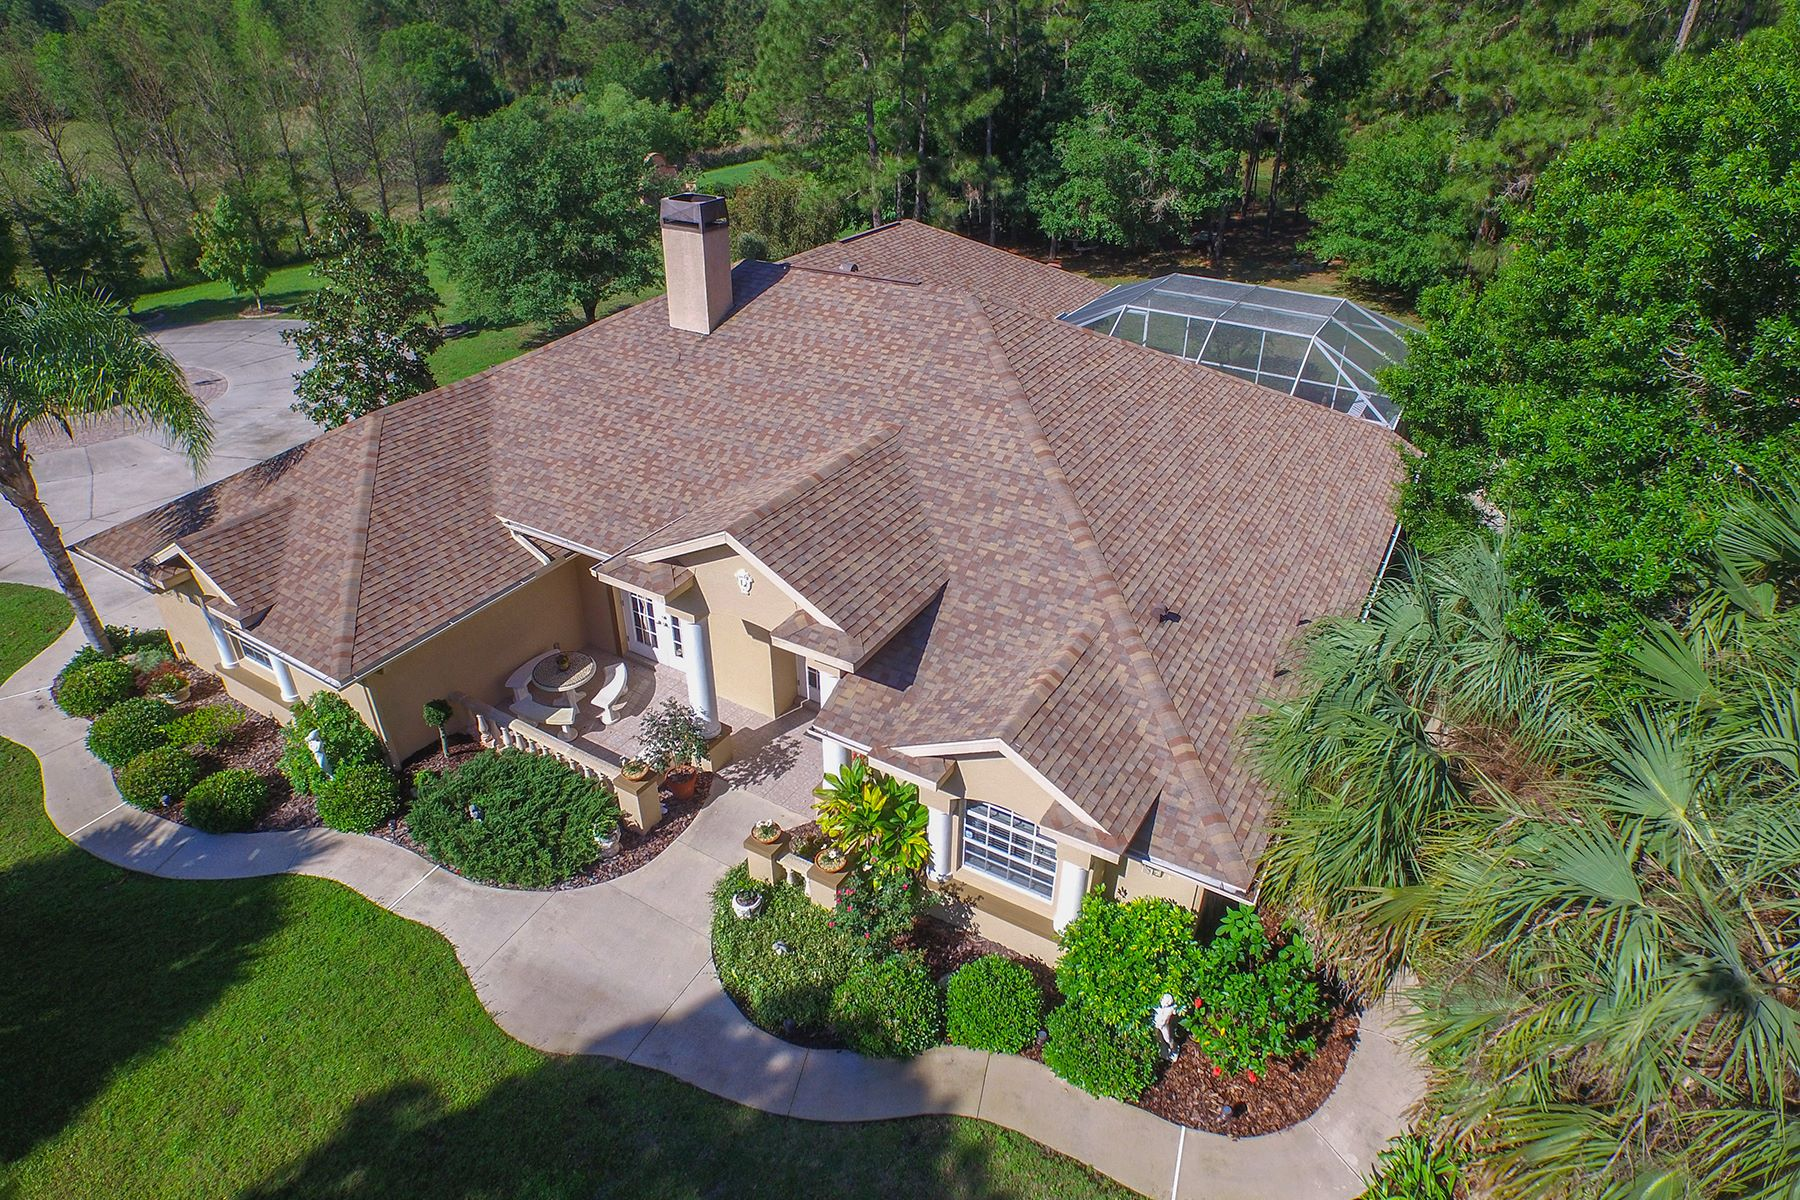 Single Family Home for Sale at NORTH PORT ESTATES 6687 Pitomba St North Port, Florida 34286 United States